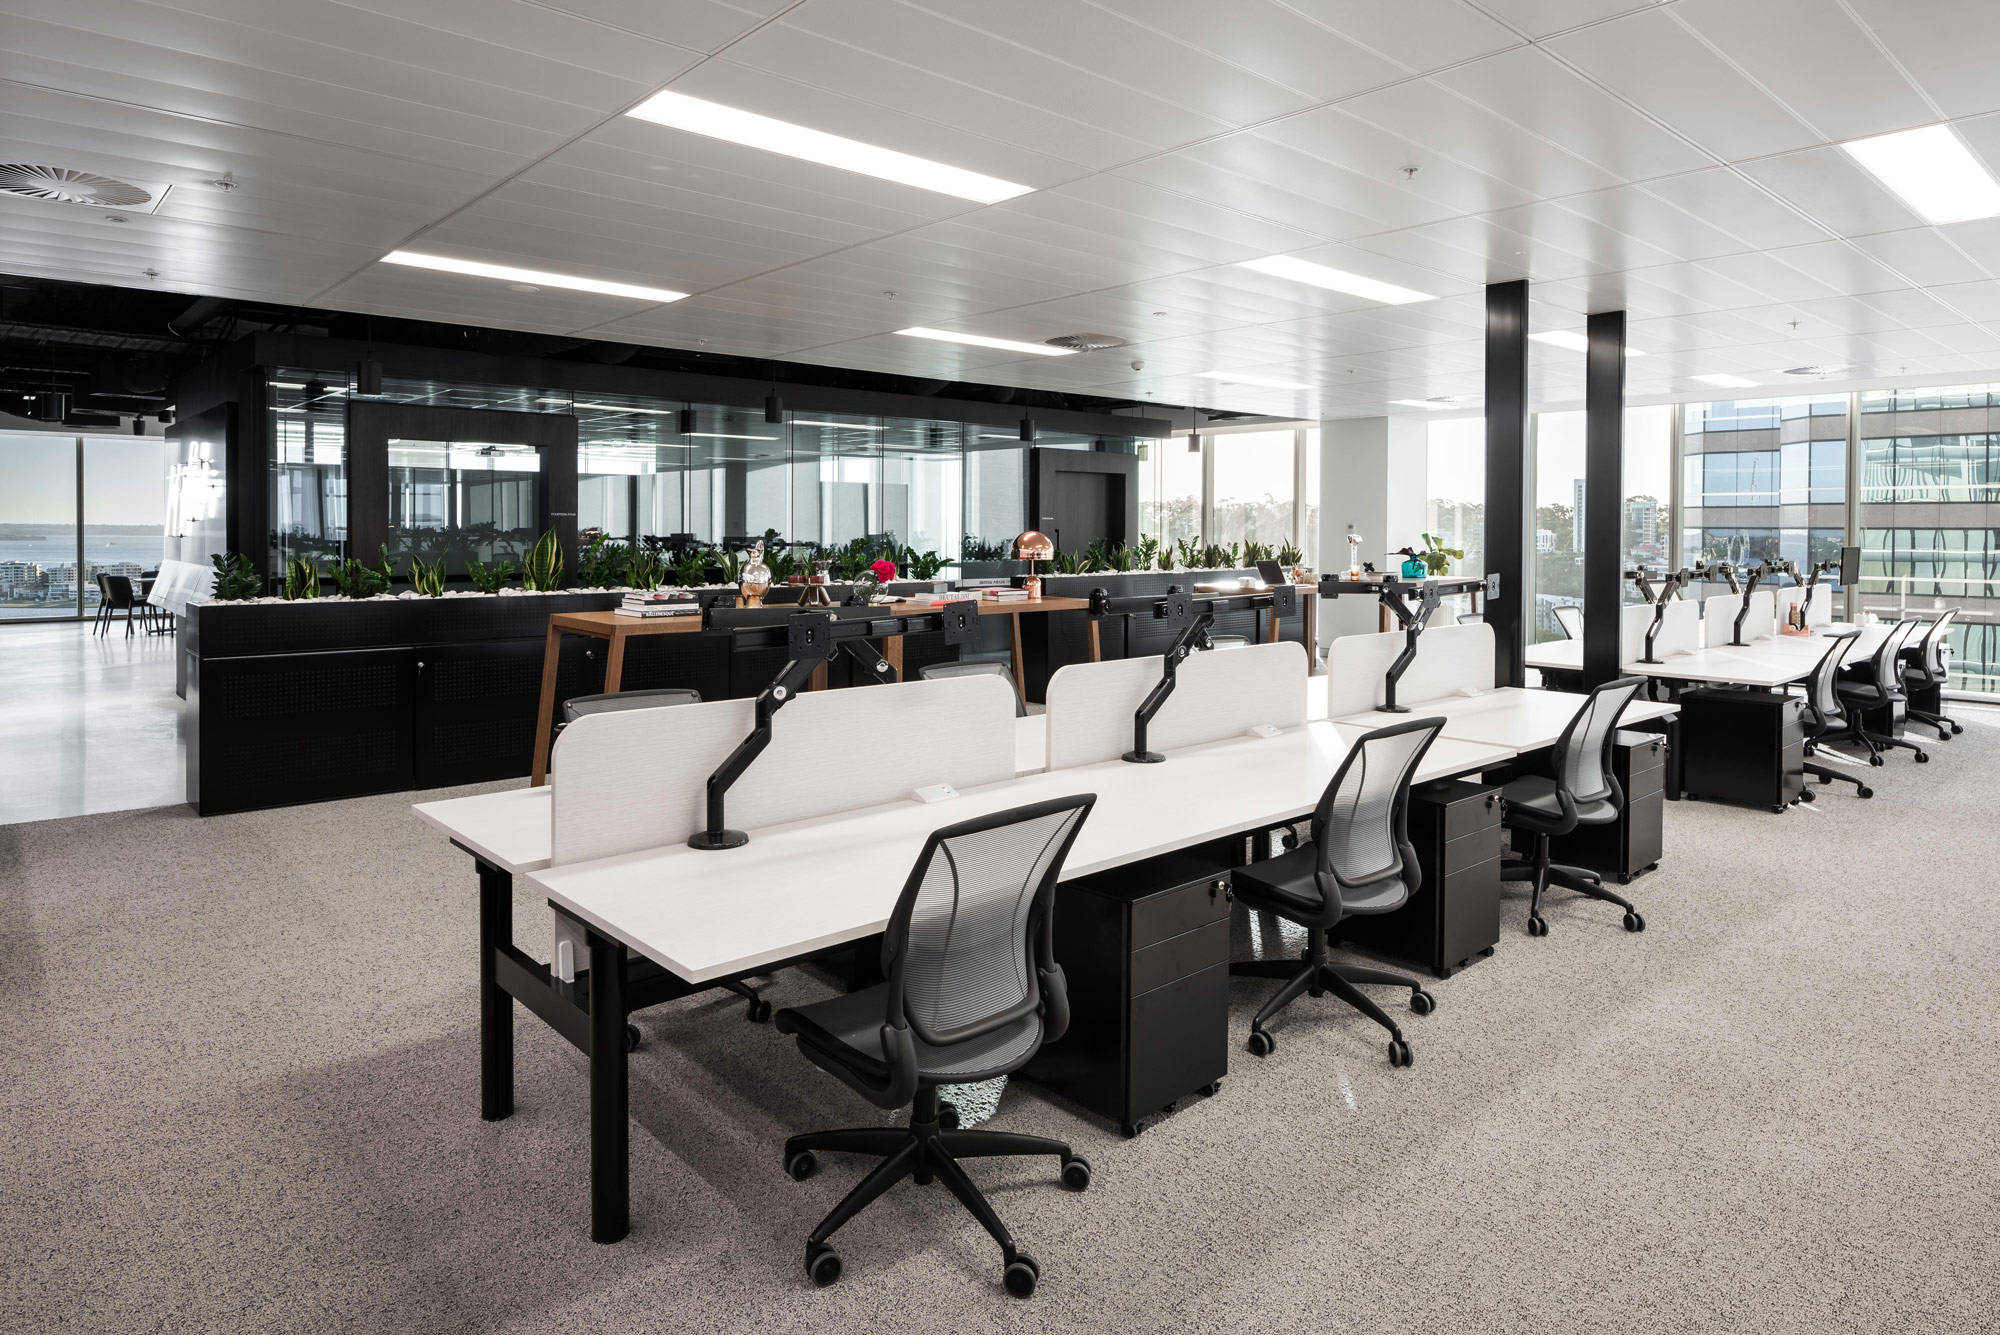 dentsu aegis network perth office fitout schiavello workstations and chairs